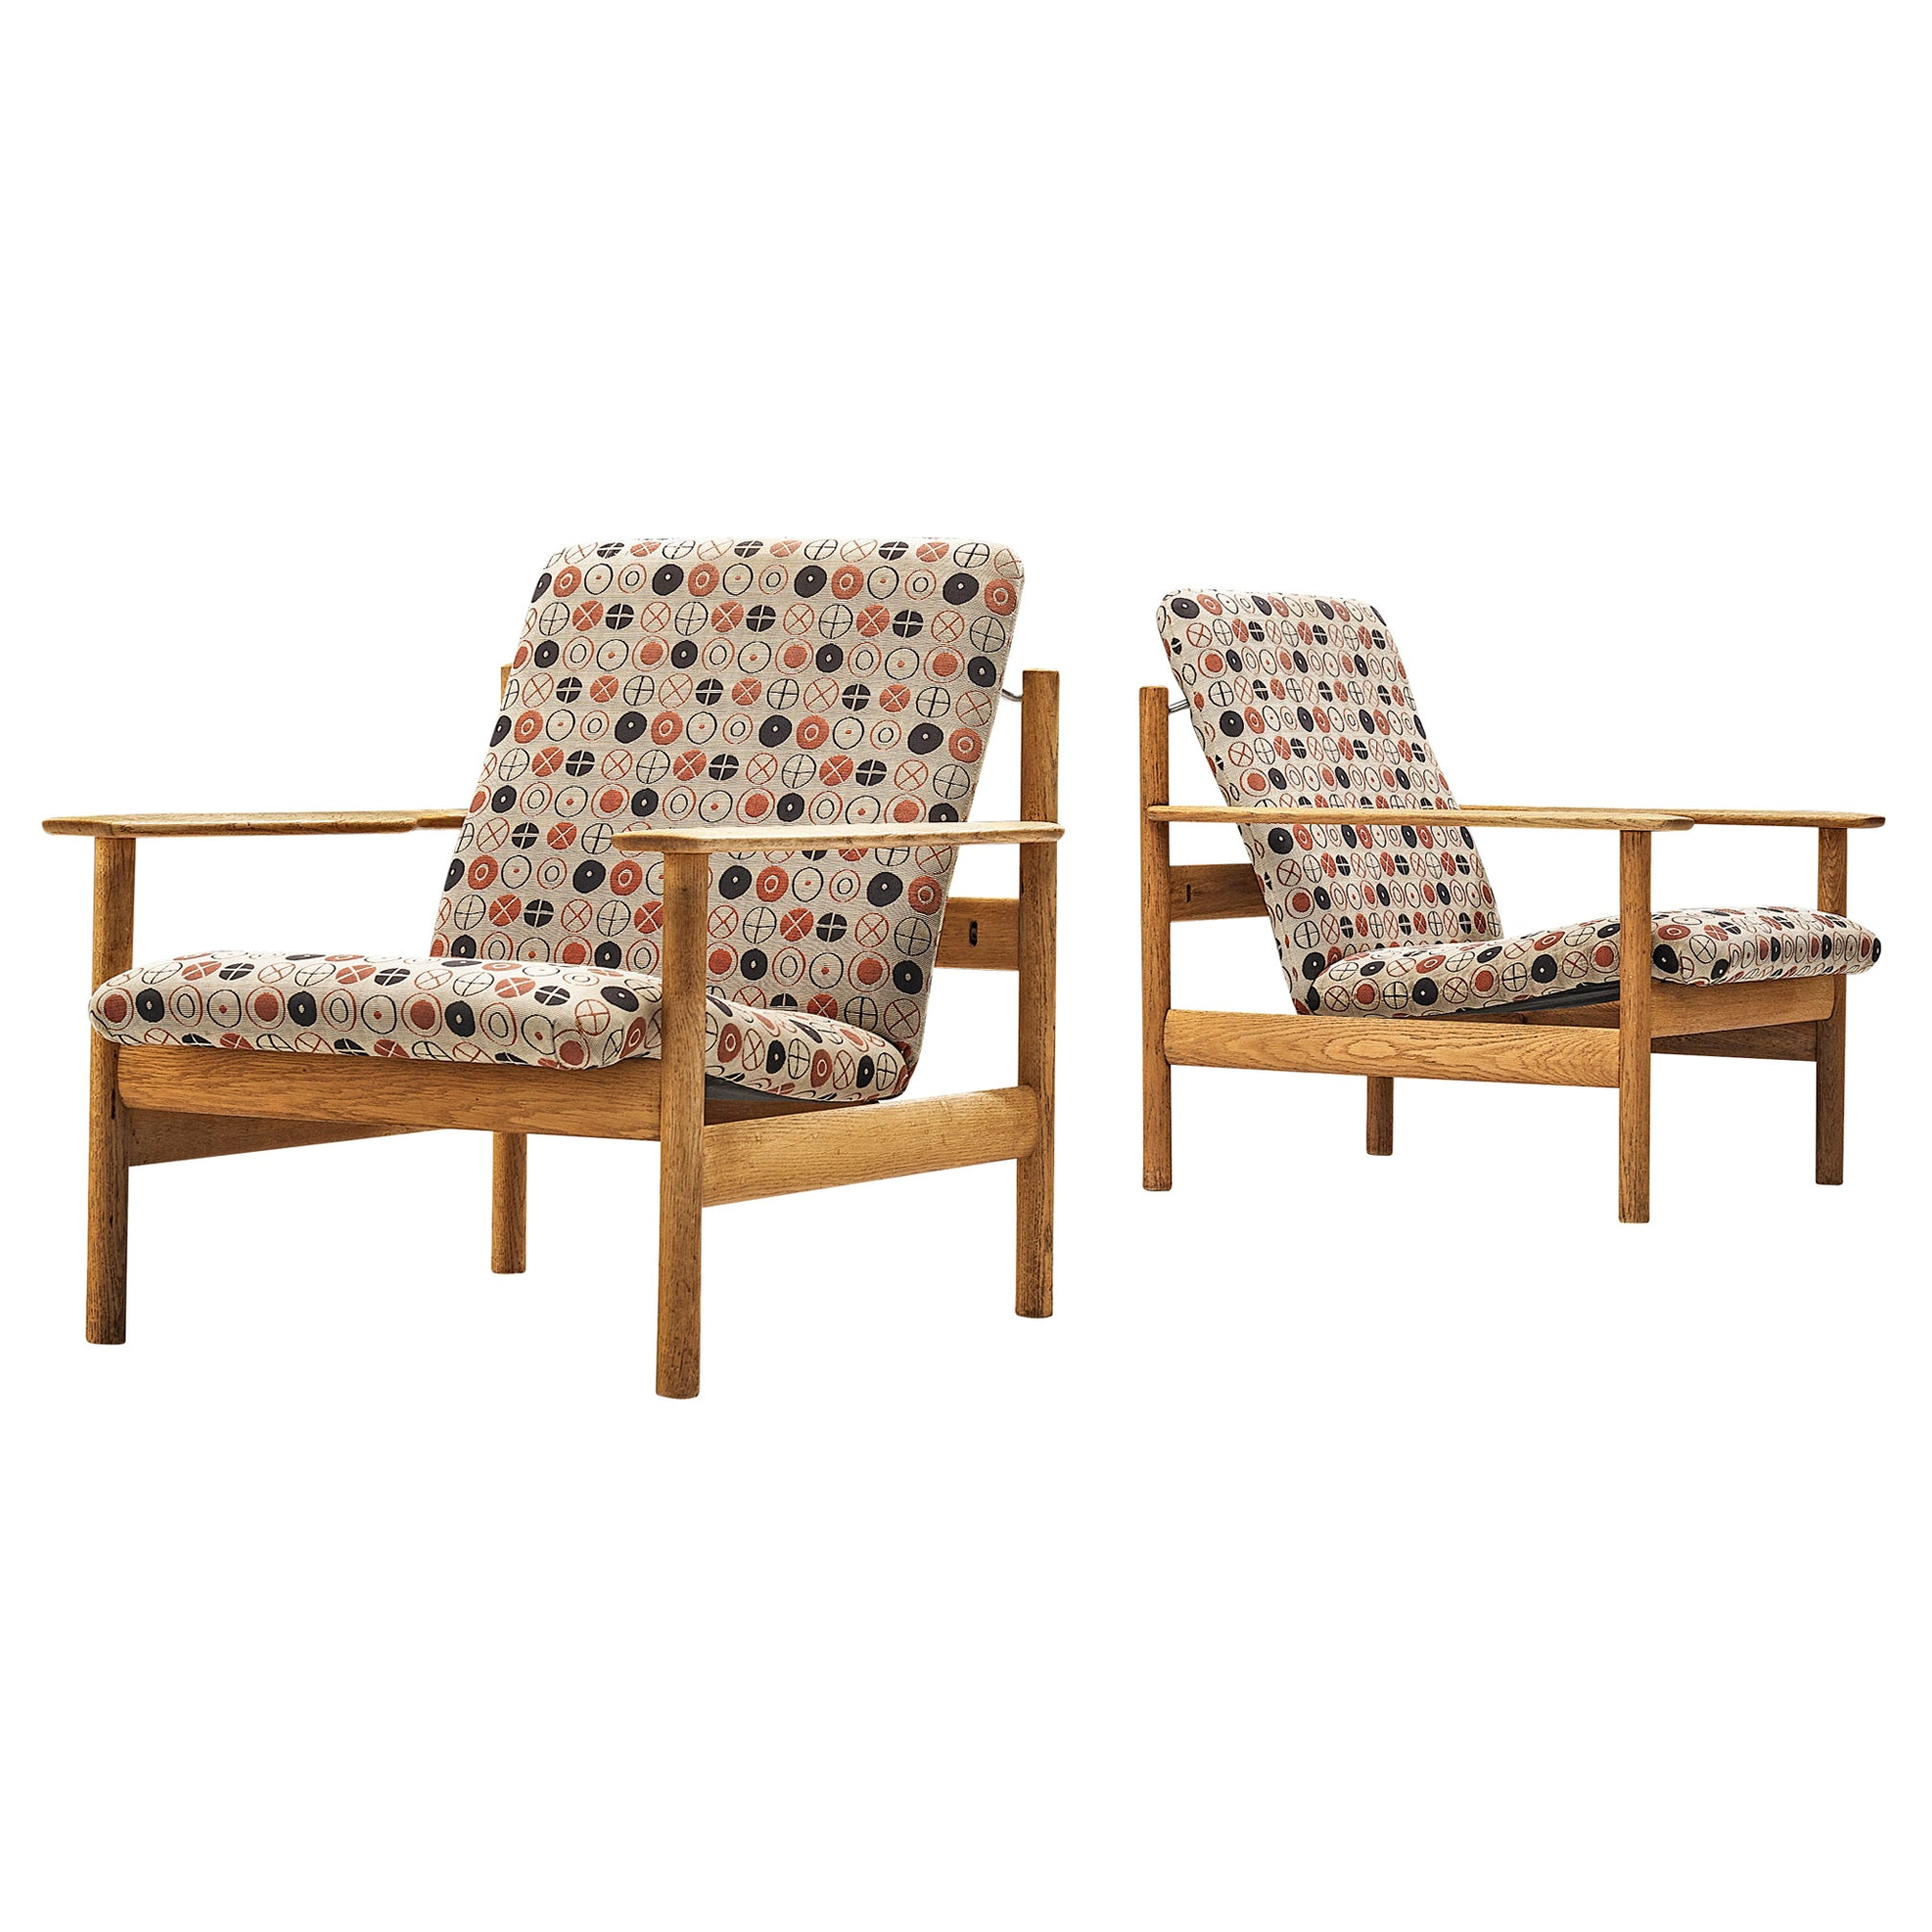 Sven Ivar Dysthe for Dokka Møbler Pair of Lounge Chairs in Charles&Ray Eames Fab